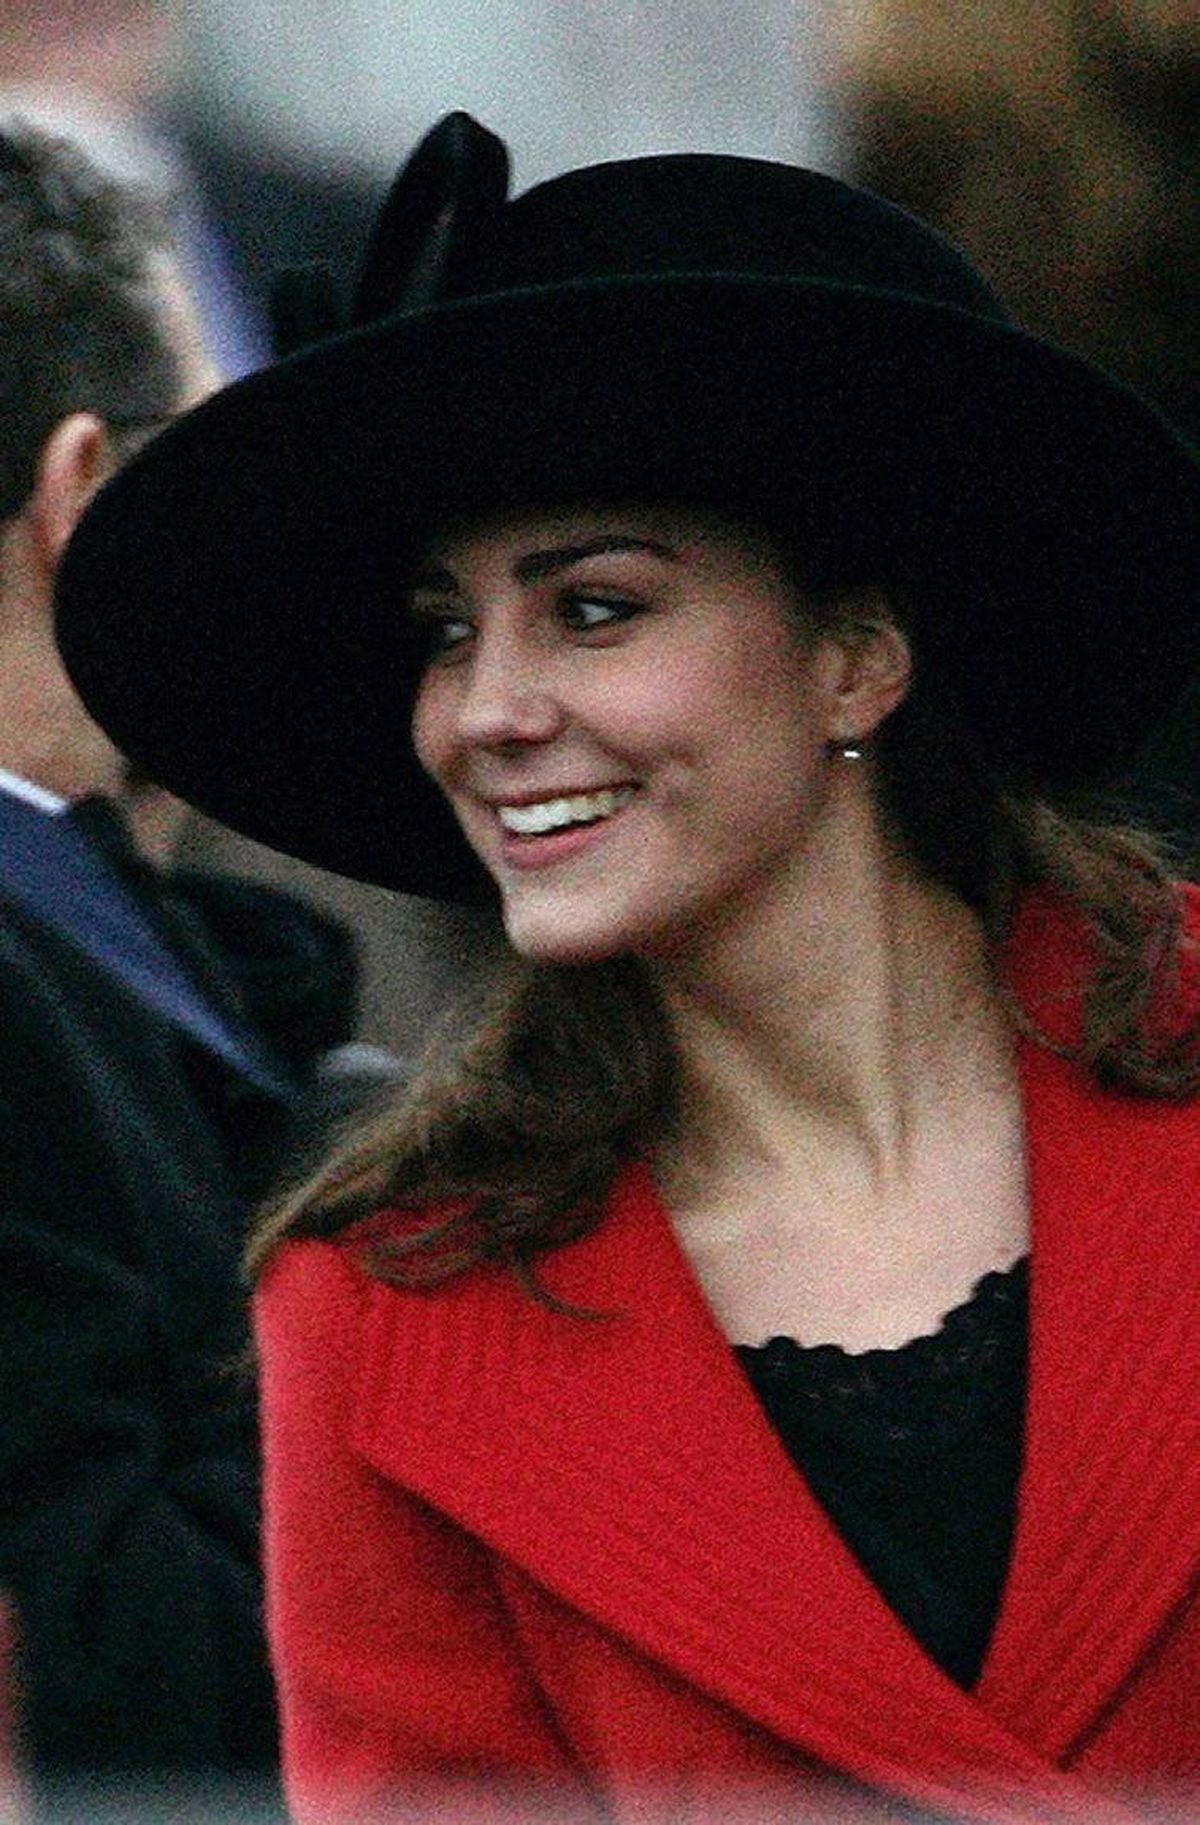 Kate Middleton smiles during the Sovereign's Parade at the Royal Military Academy in Sandhurst, southern England December 15, 2006.